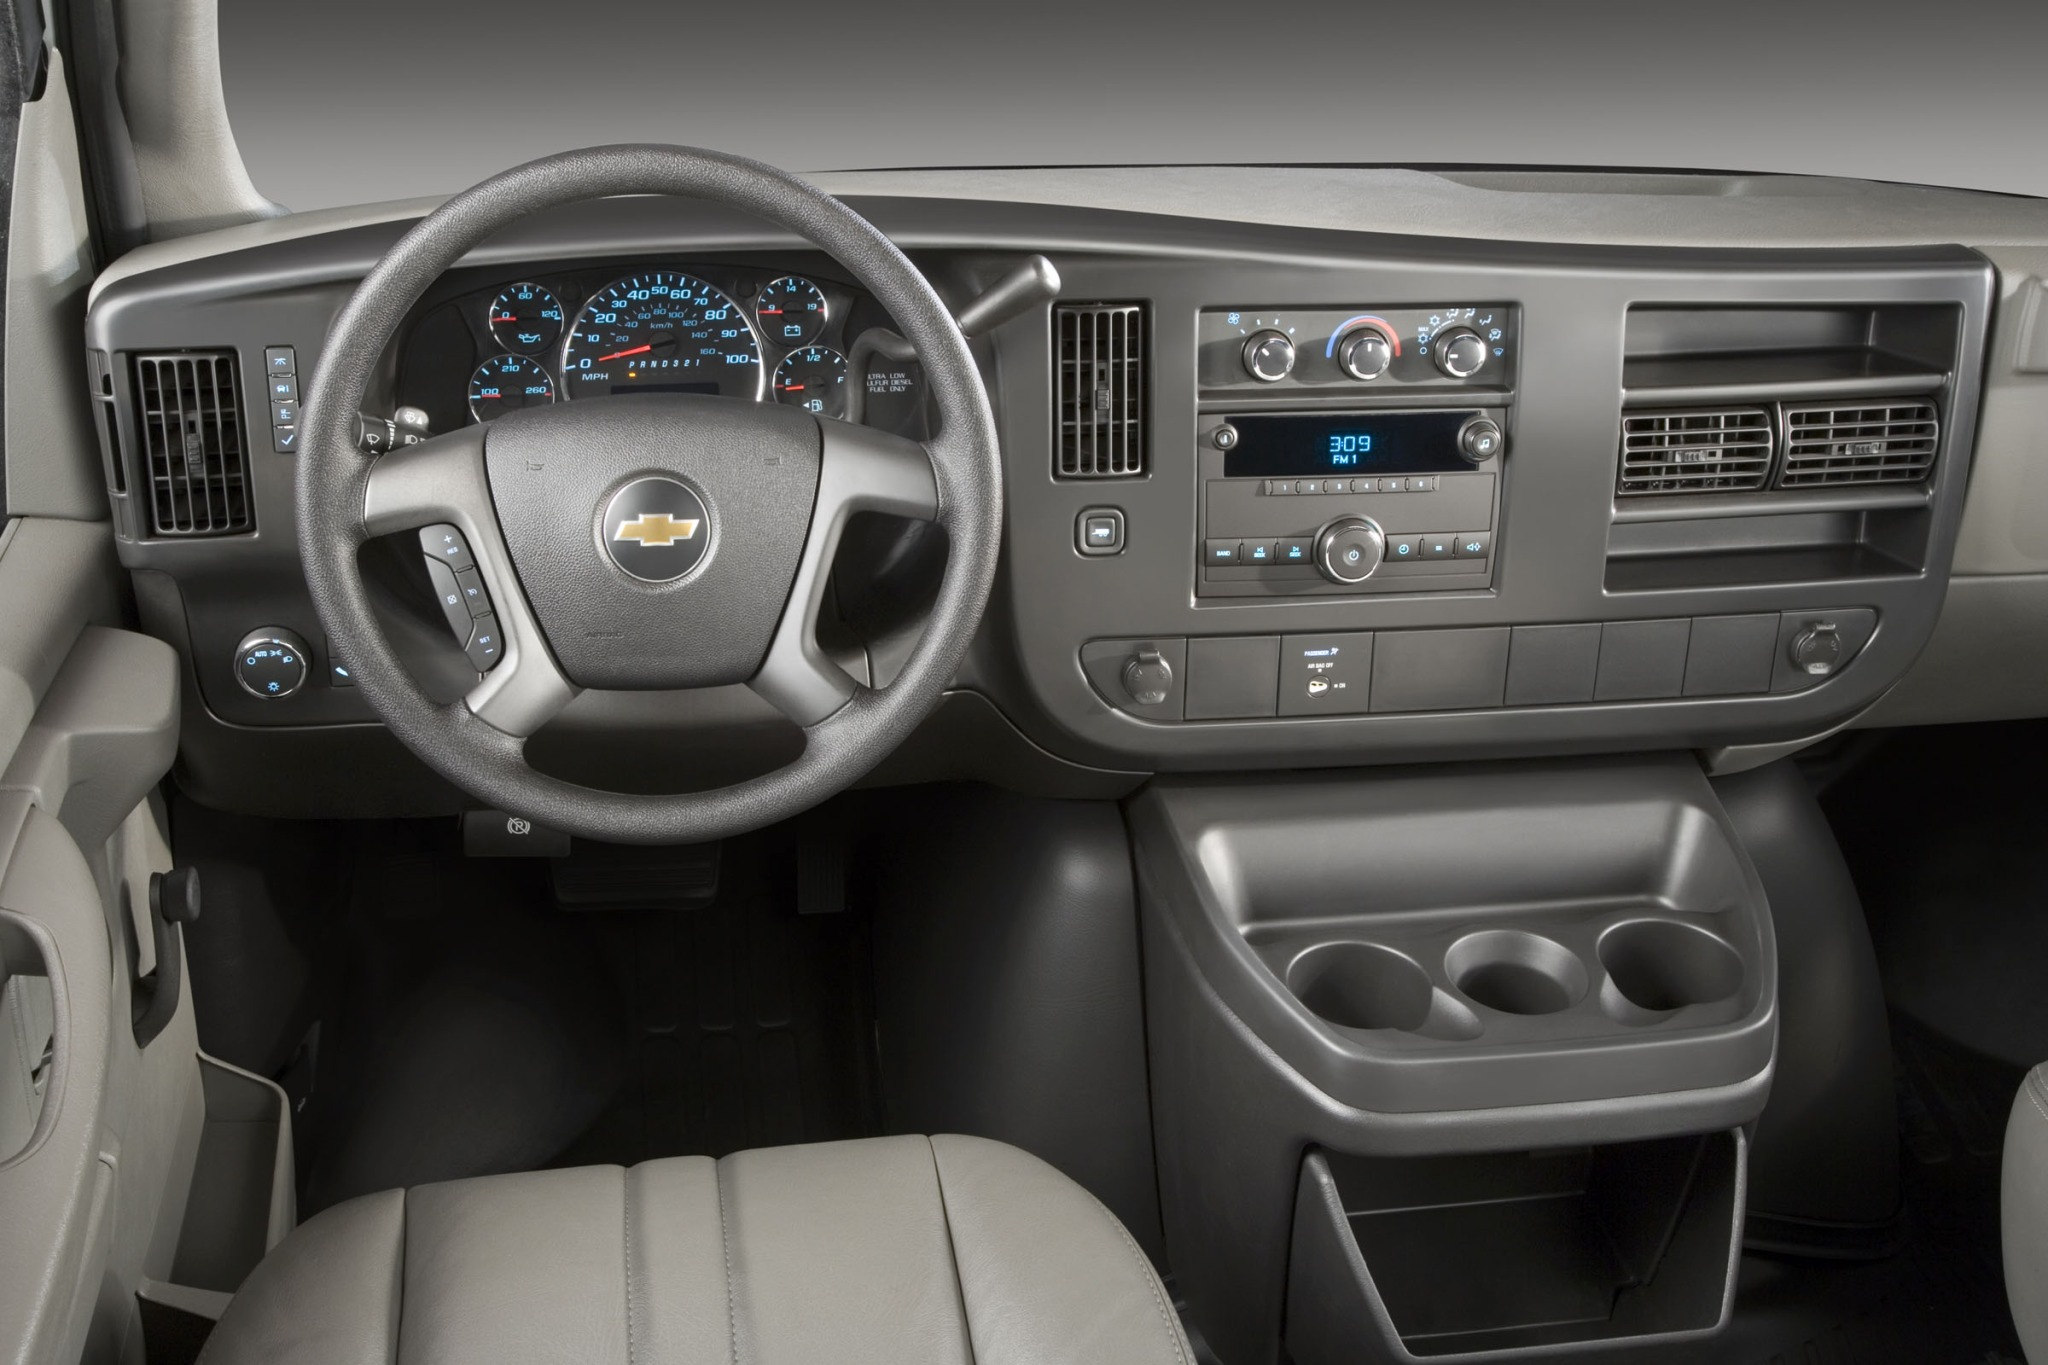 2013 Chevrolet Express LS interior #2